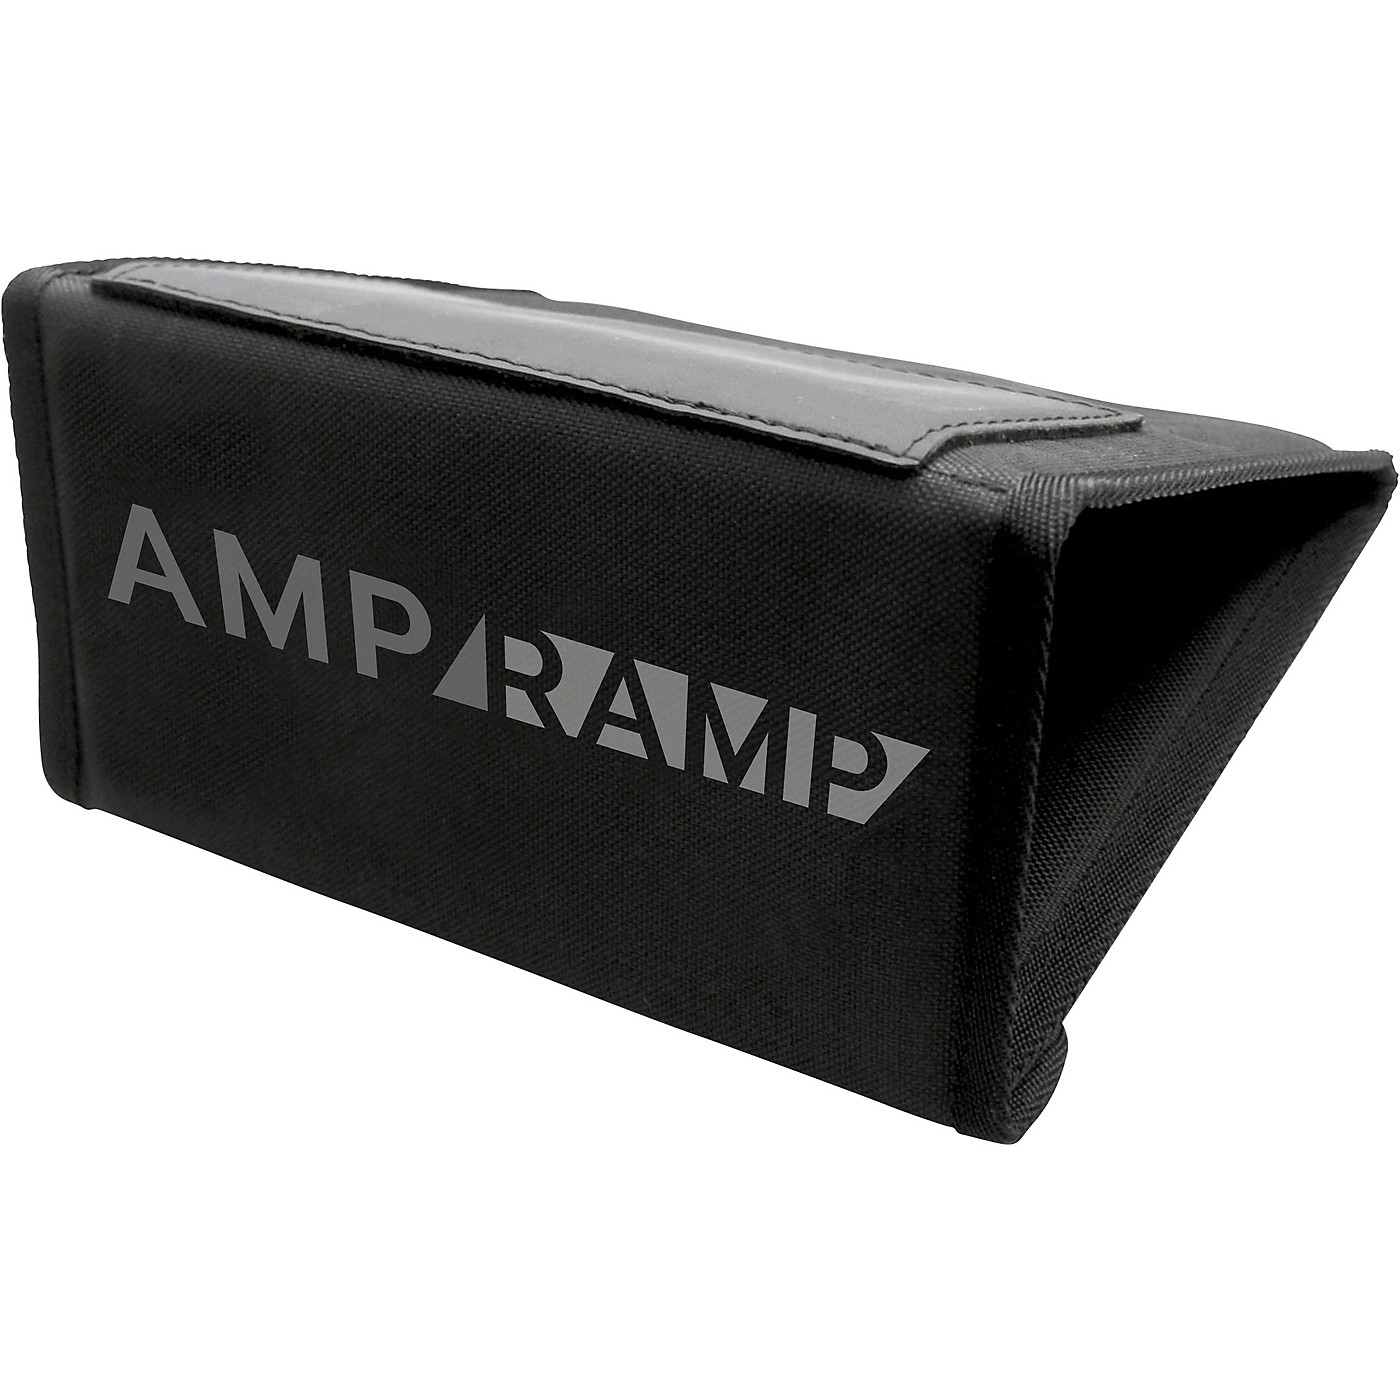 Outlaw Effects Amp Ramp thumbnail